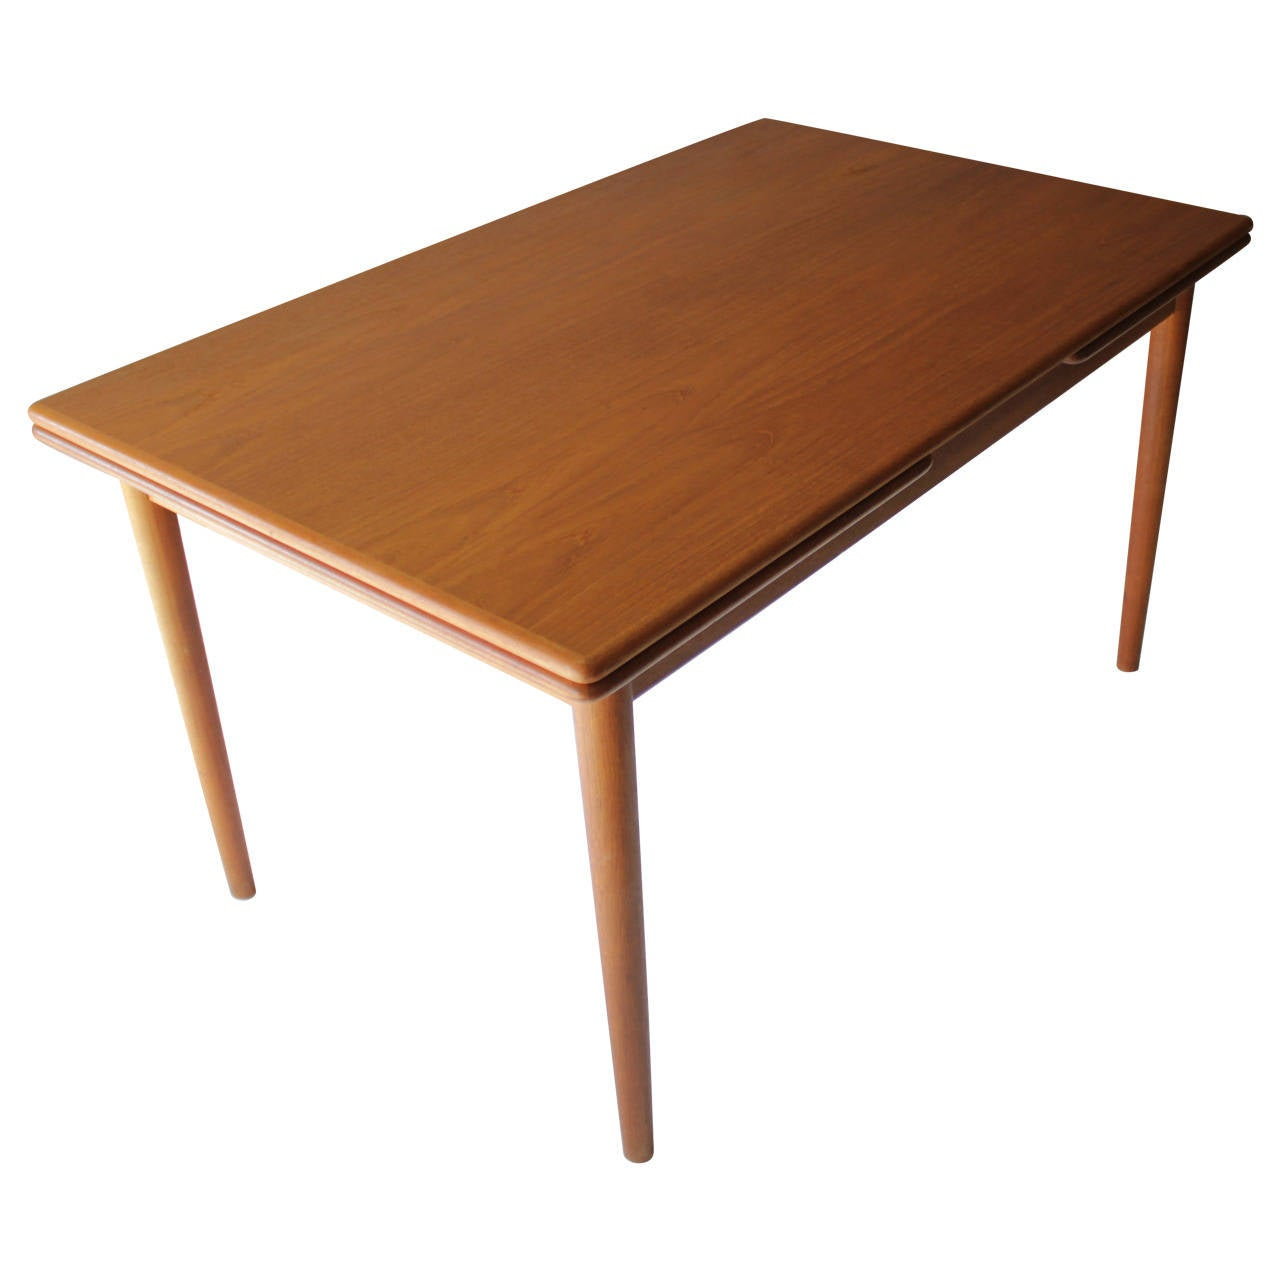 Danish teak dining room table with two leaves for sale at for Dining table with two leaves